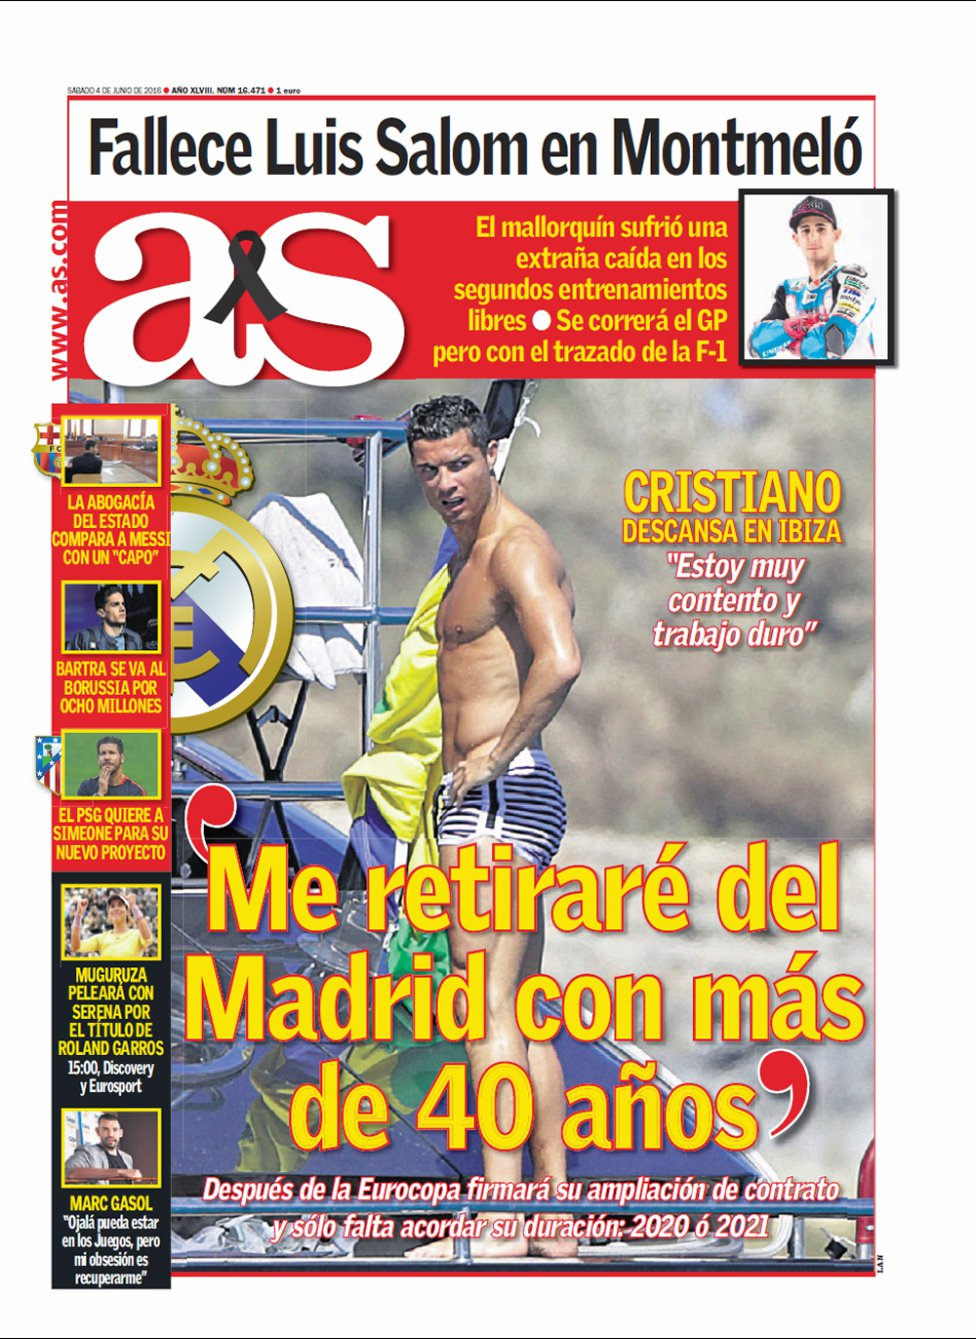 Luis Salom killed in Montmelo. But for AS was better occupy the front with Cristiano in swimsuit wearing tan. Hear first order.